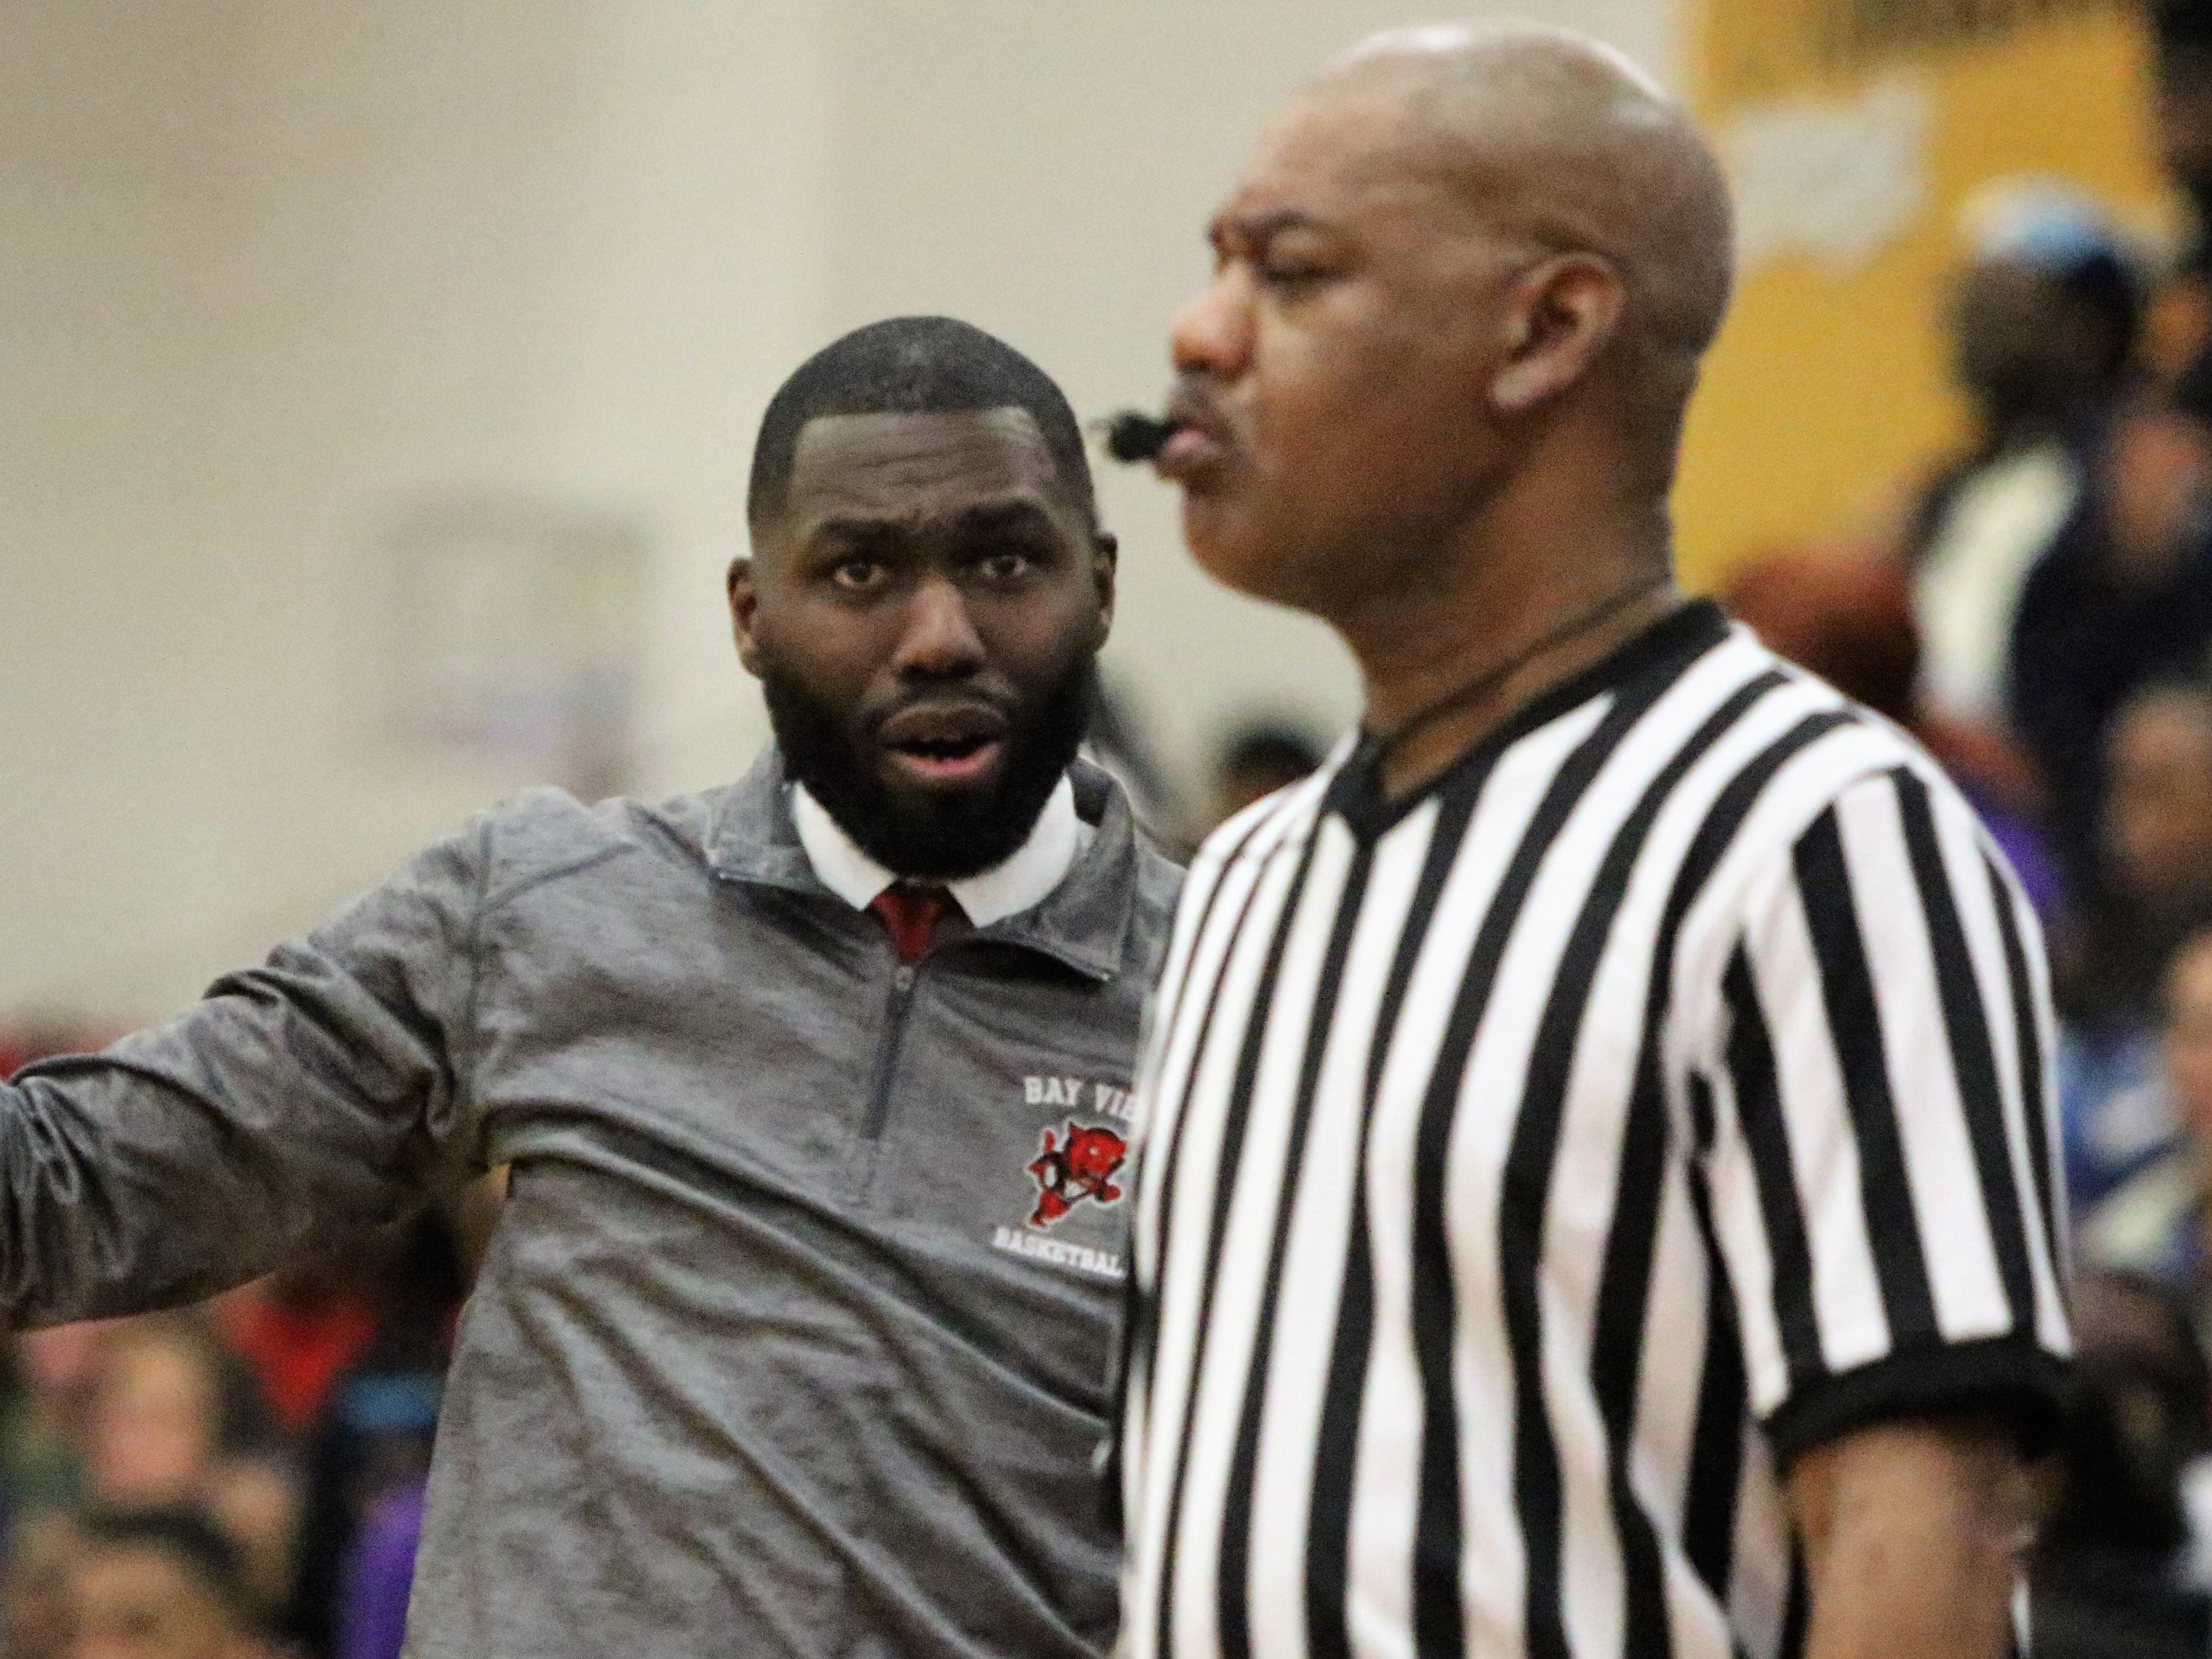 Milwaukee Bay View head coach Darryl Longley asks a referee about a call during his team's game against Milwaukee Washington on Friday night.